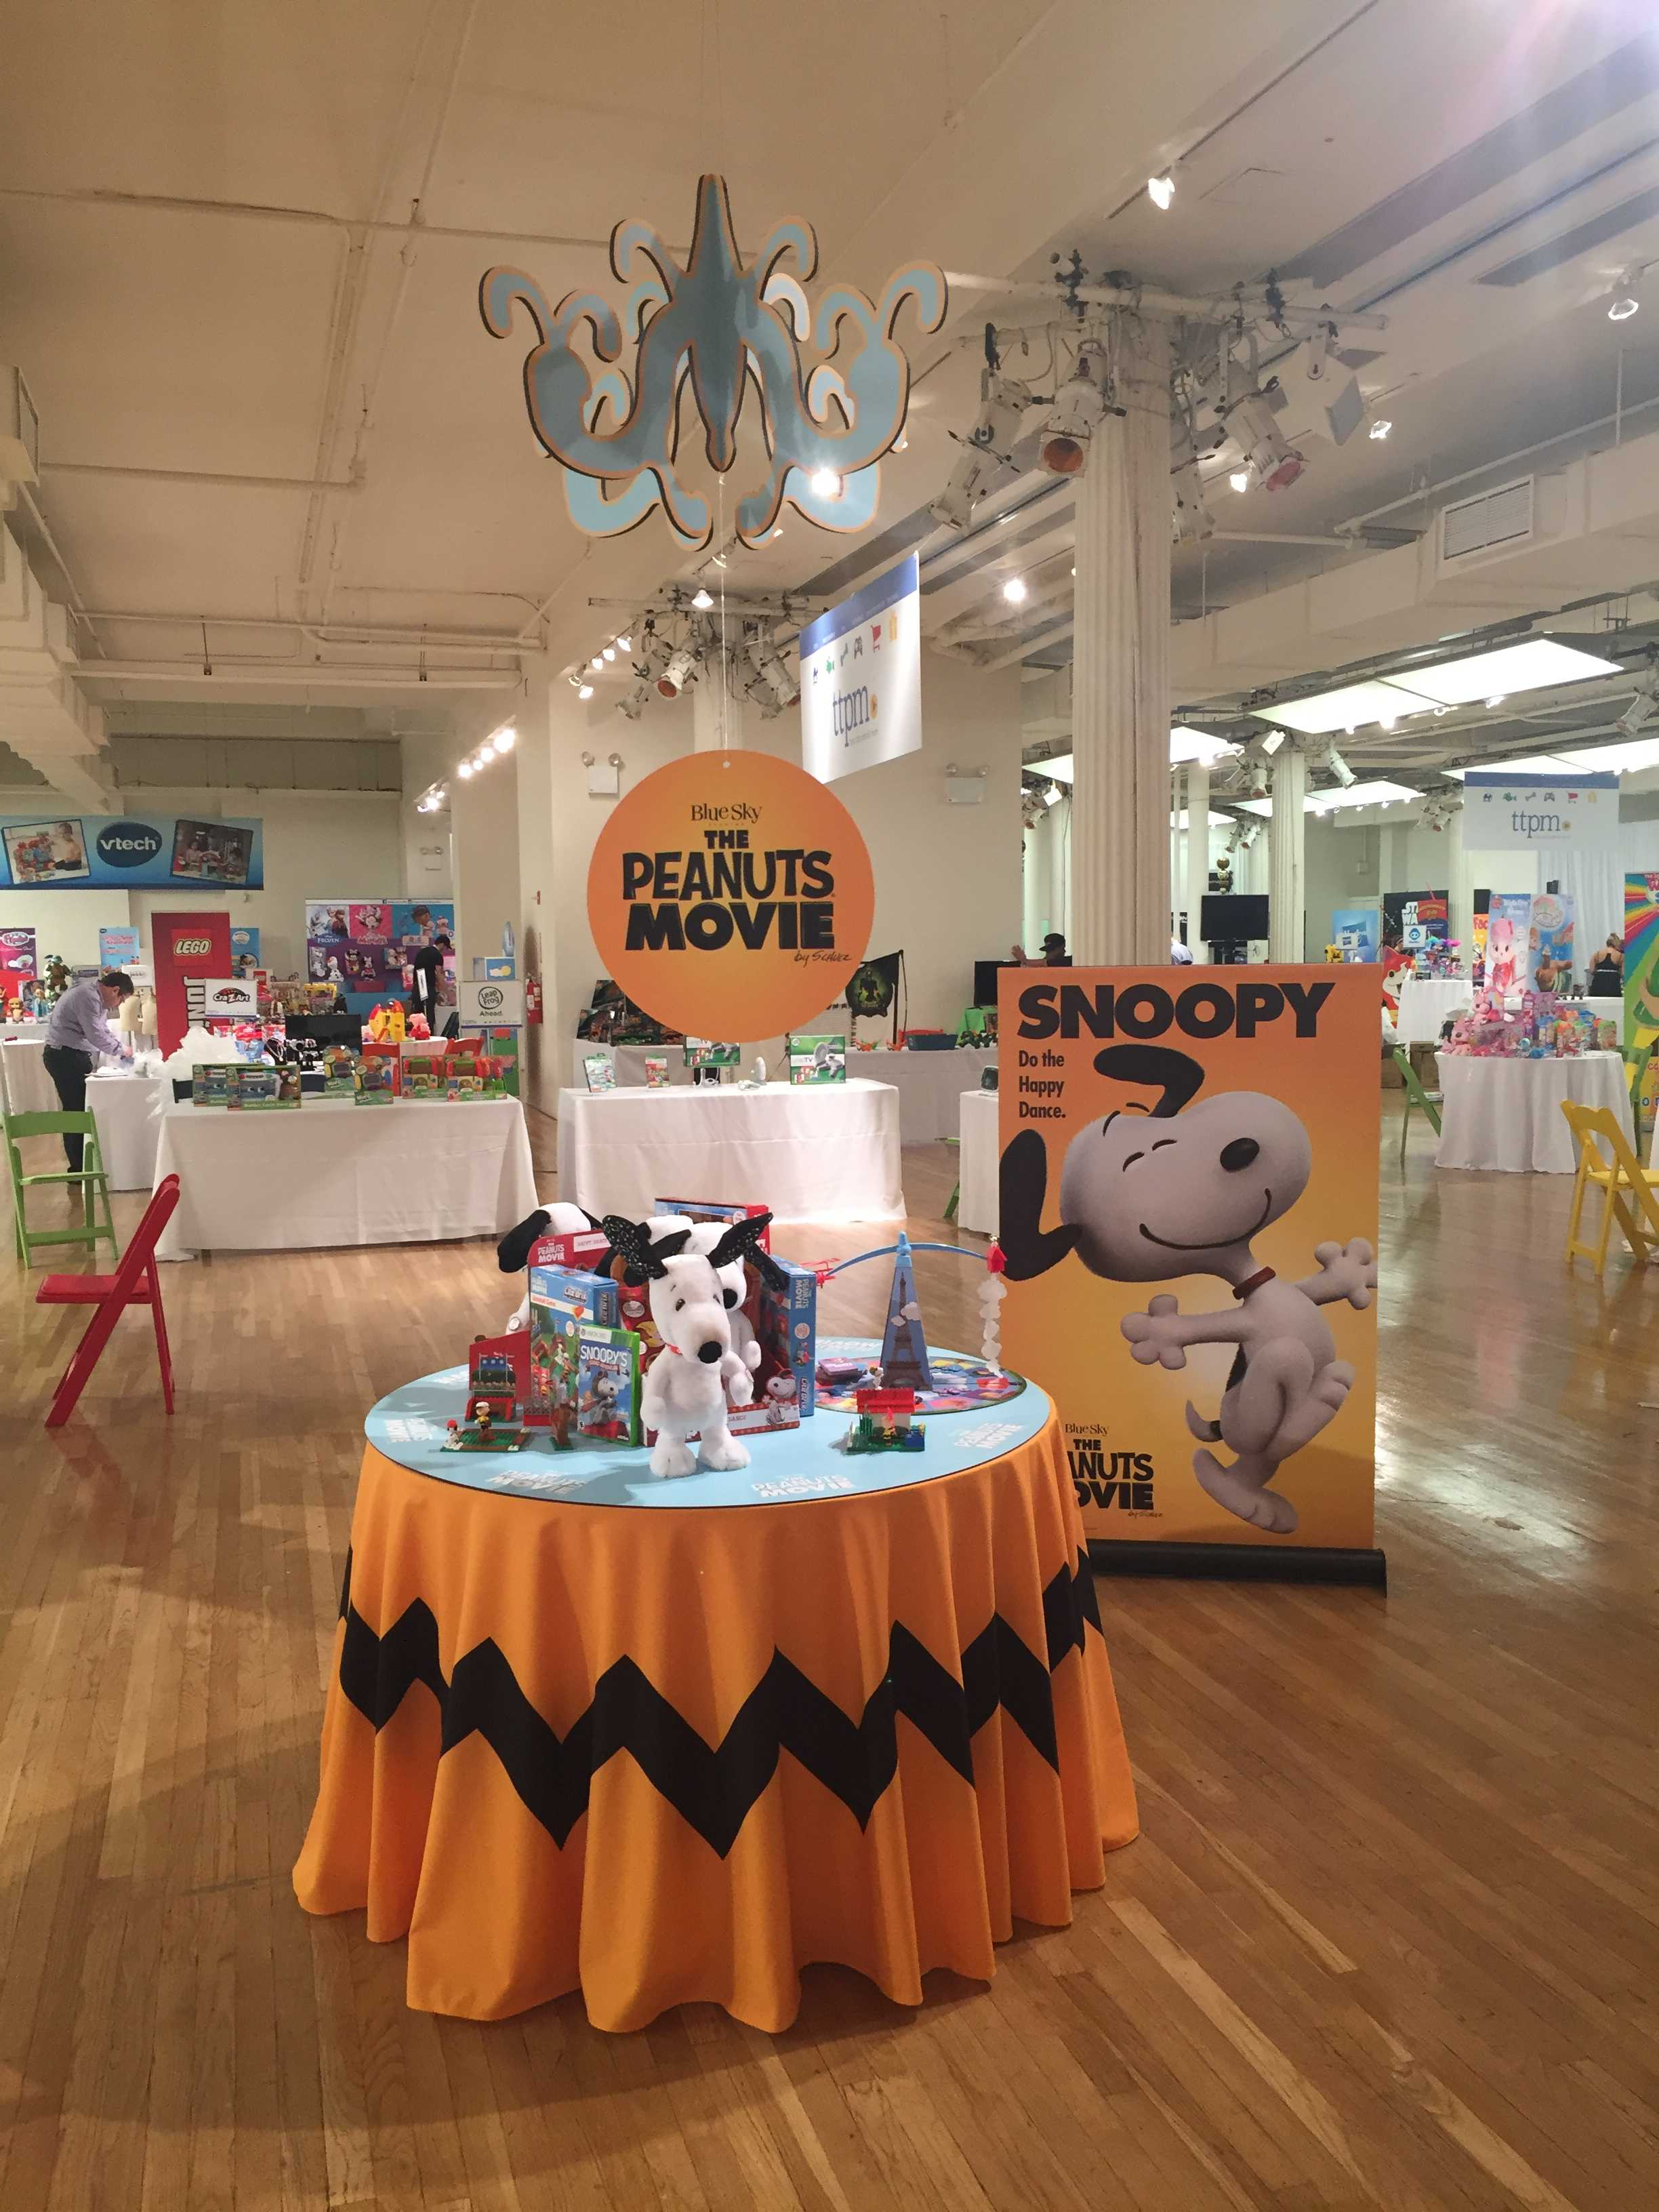 Peanuts New Movie Custom Display - Custom Displays manufactured by National Flag and Display in NYC